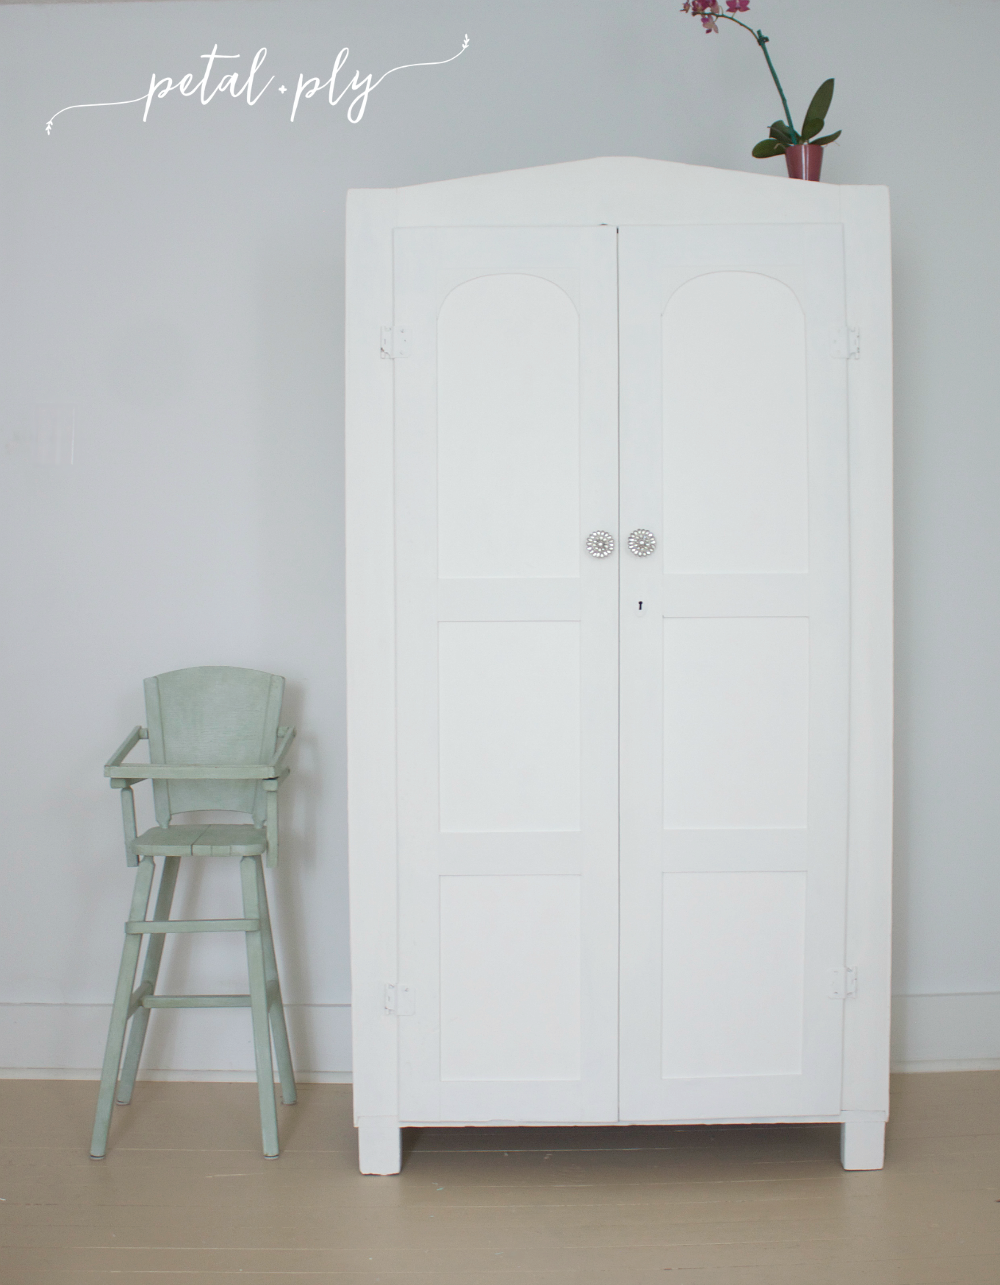 wm-vintage-armoire-DIY-paint-trim